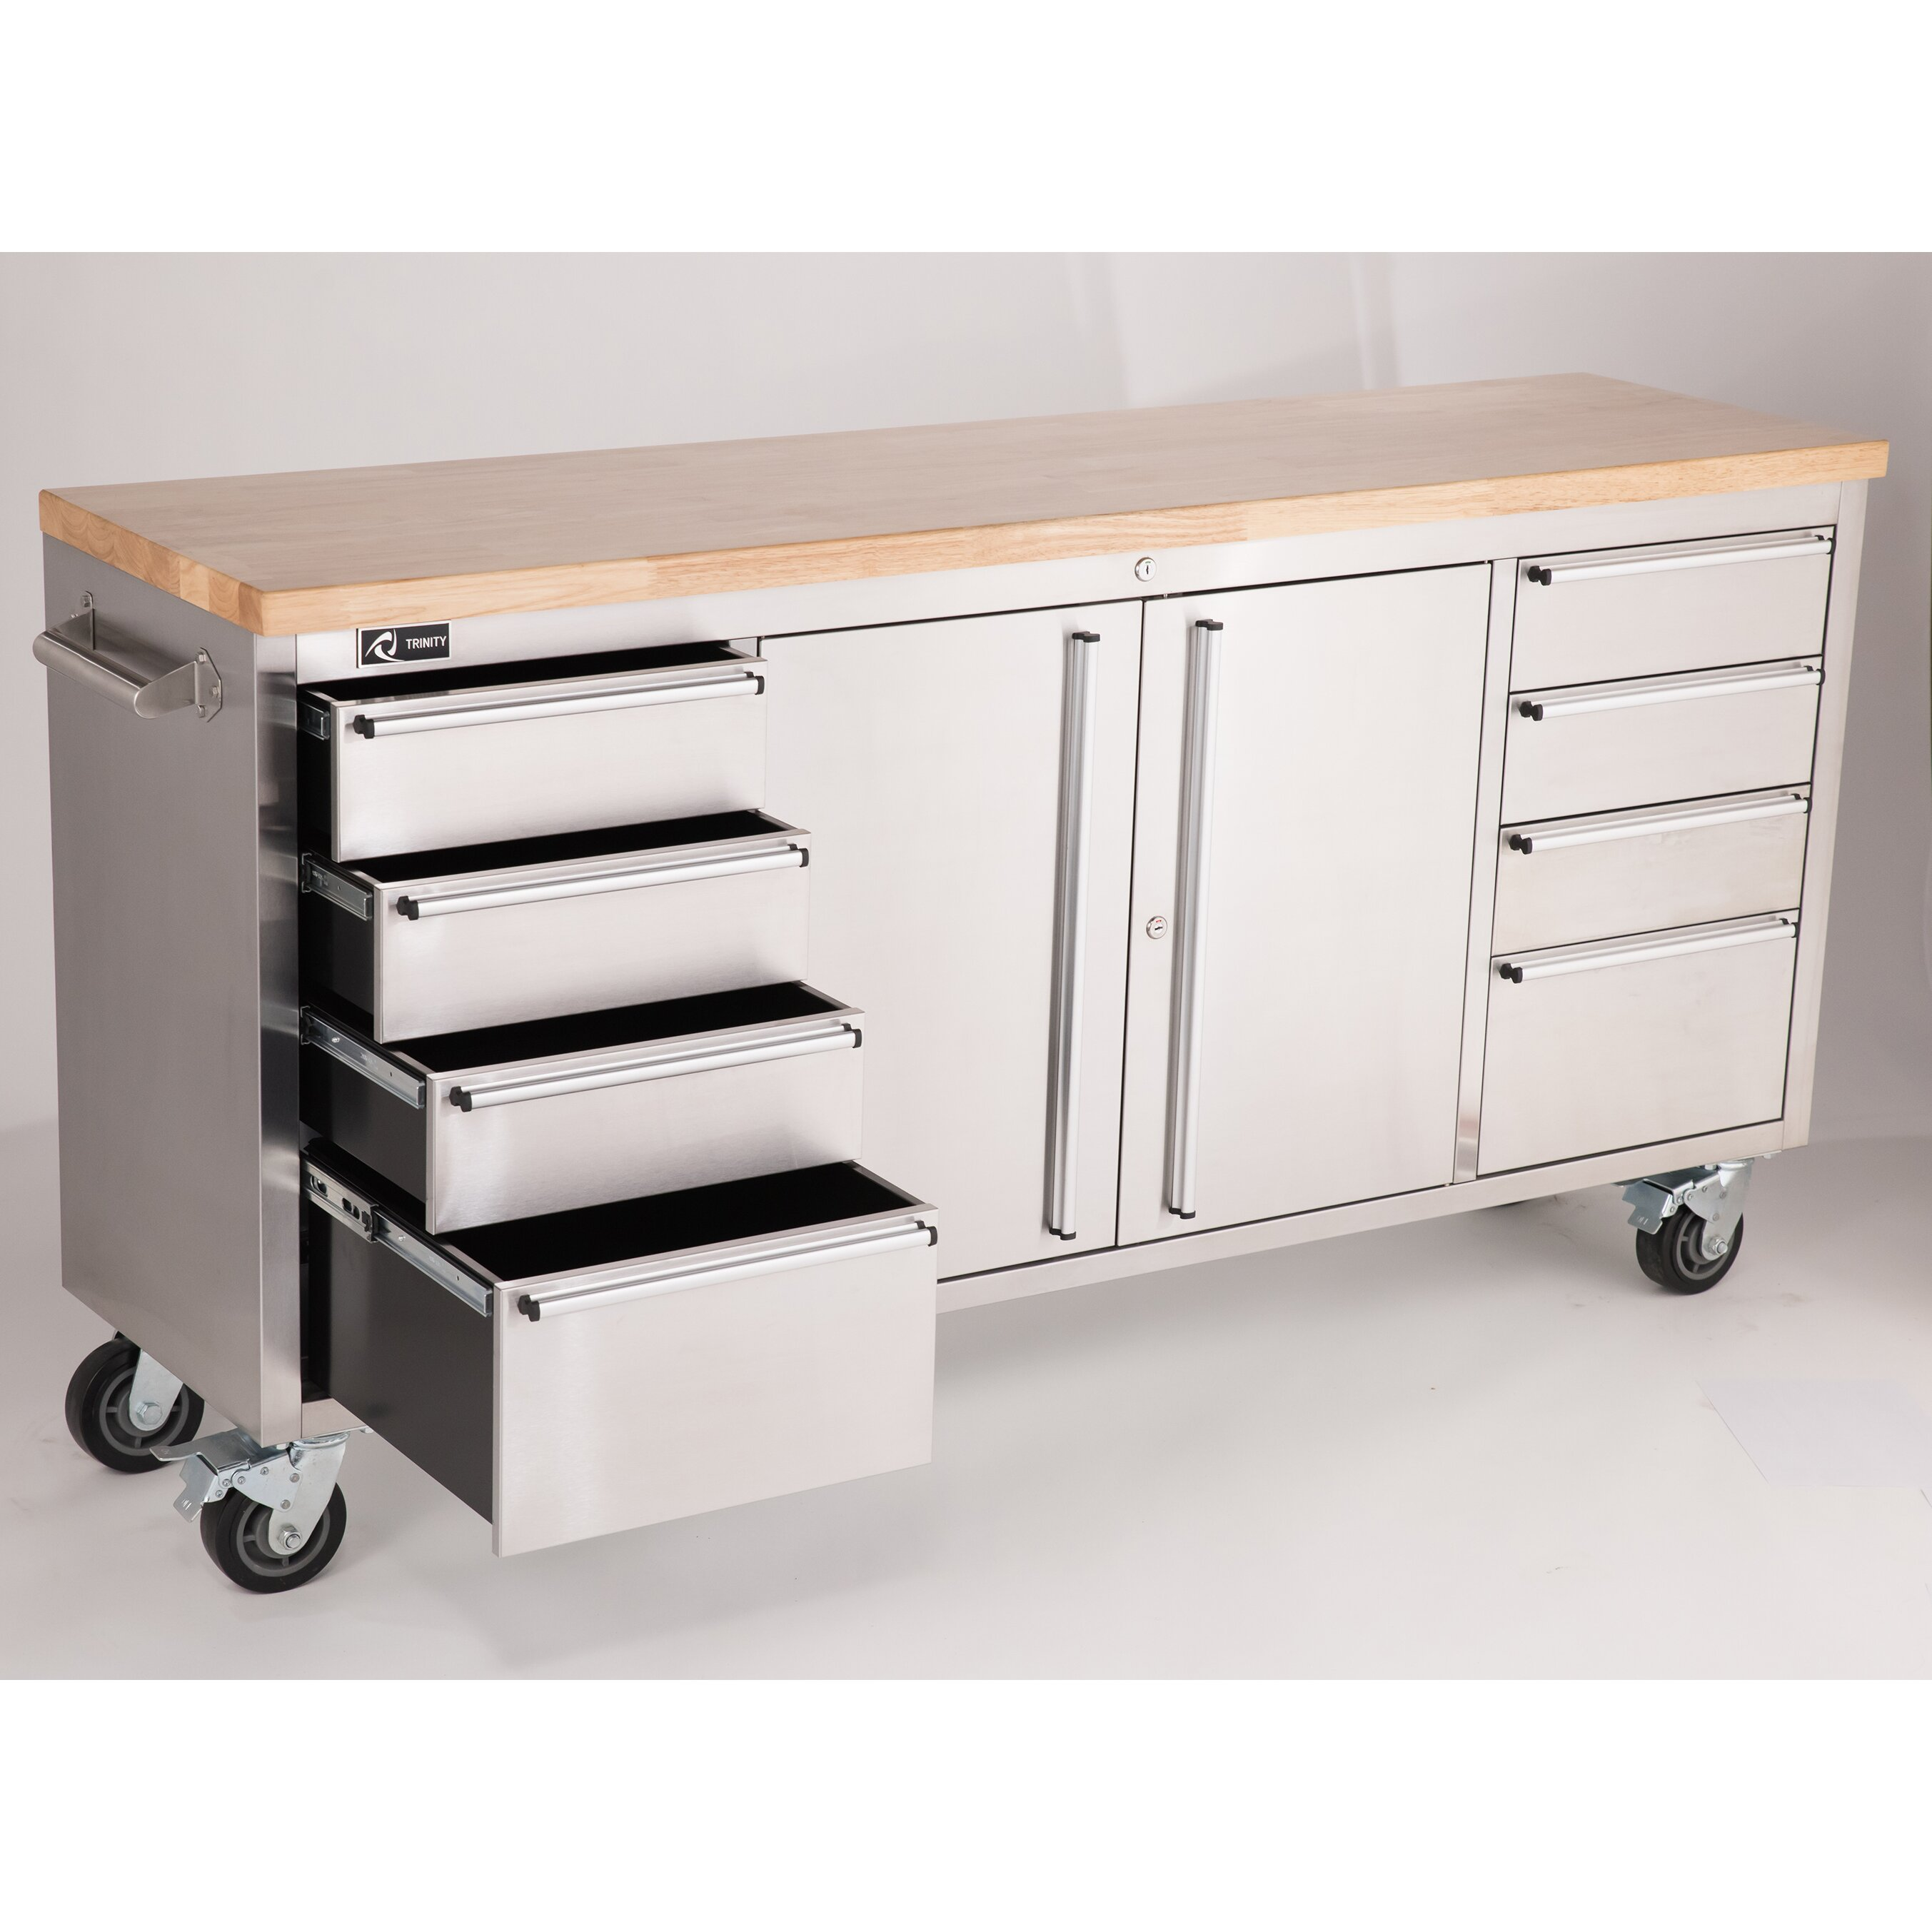 stainless steel rolling workbench wayfair supply. Black Bedroom Furniture Sets. Home Design Ideas